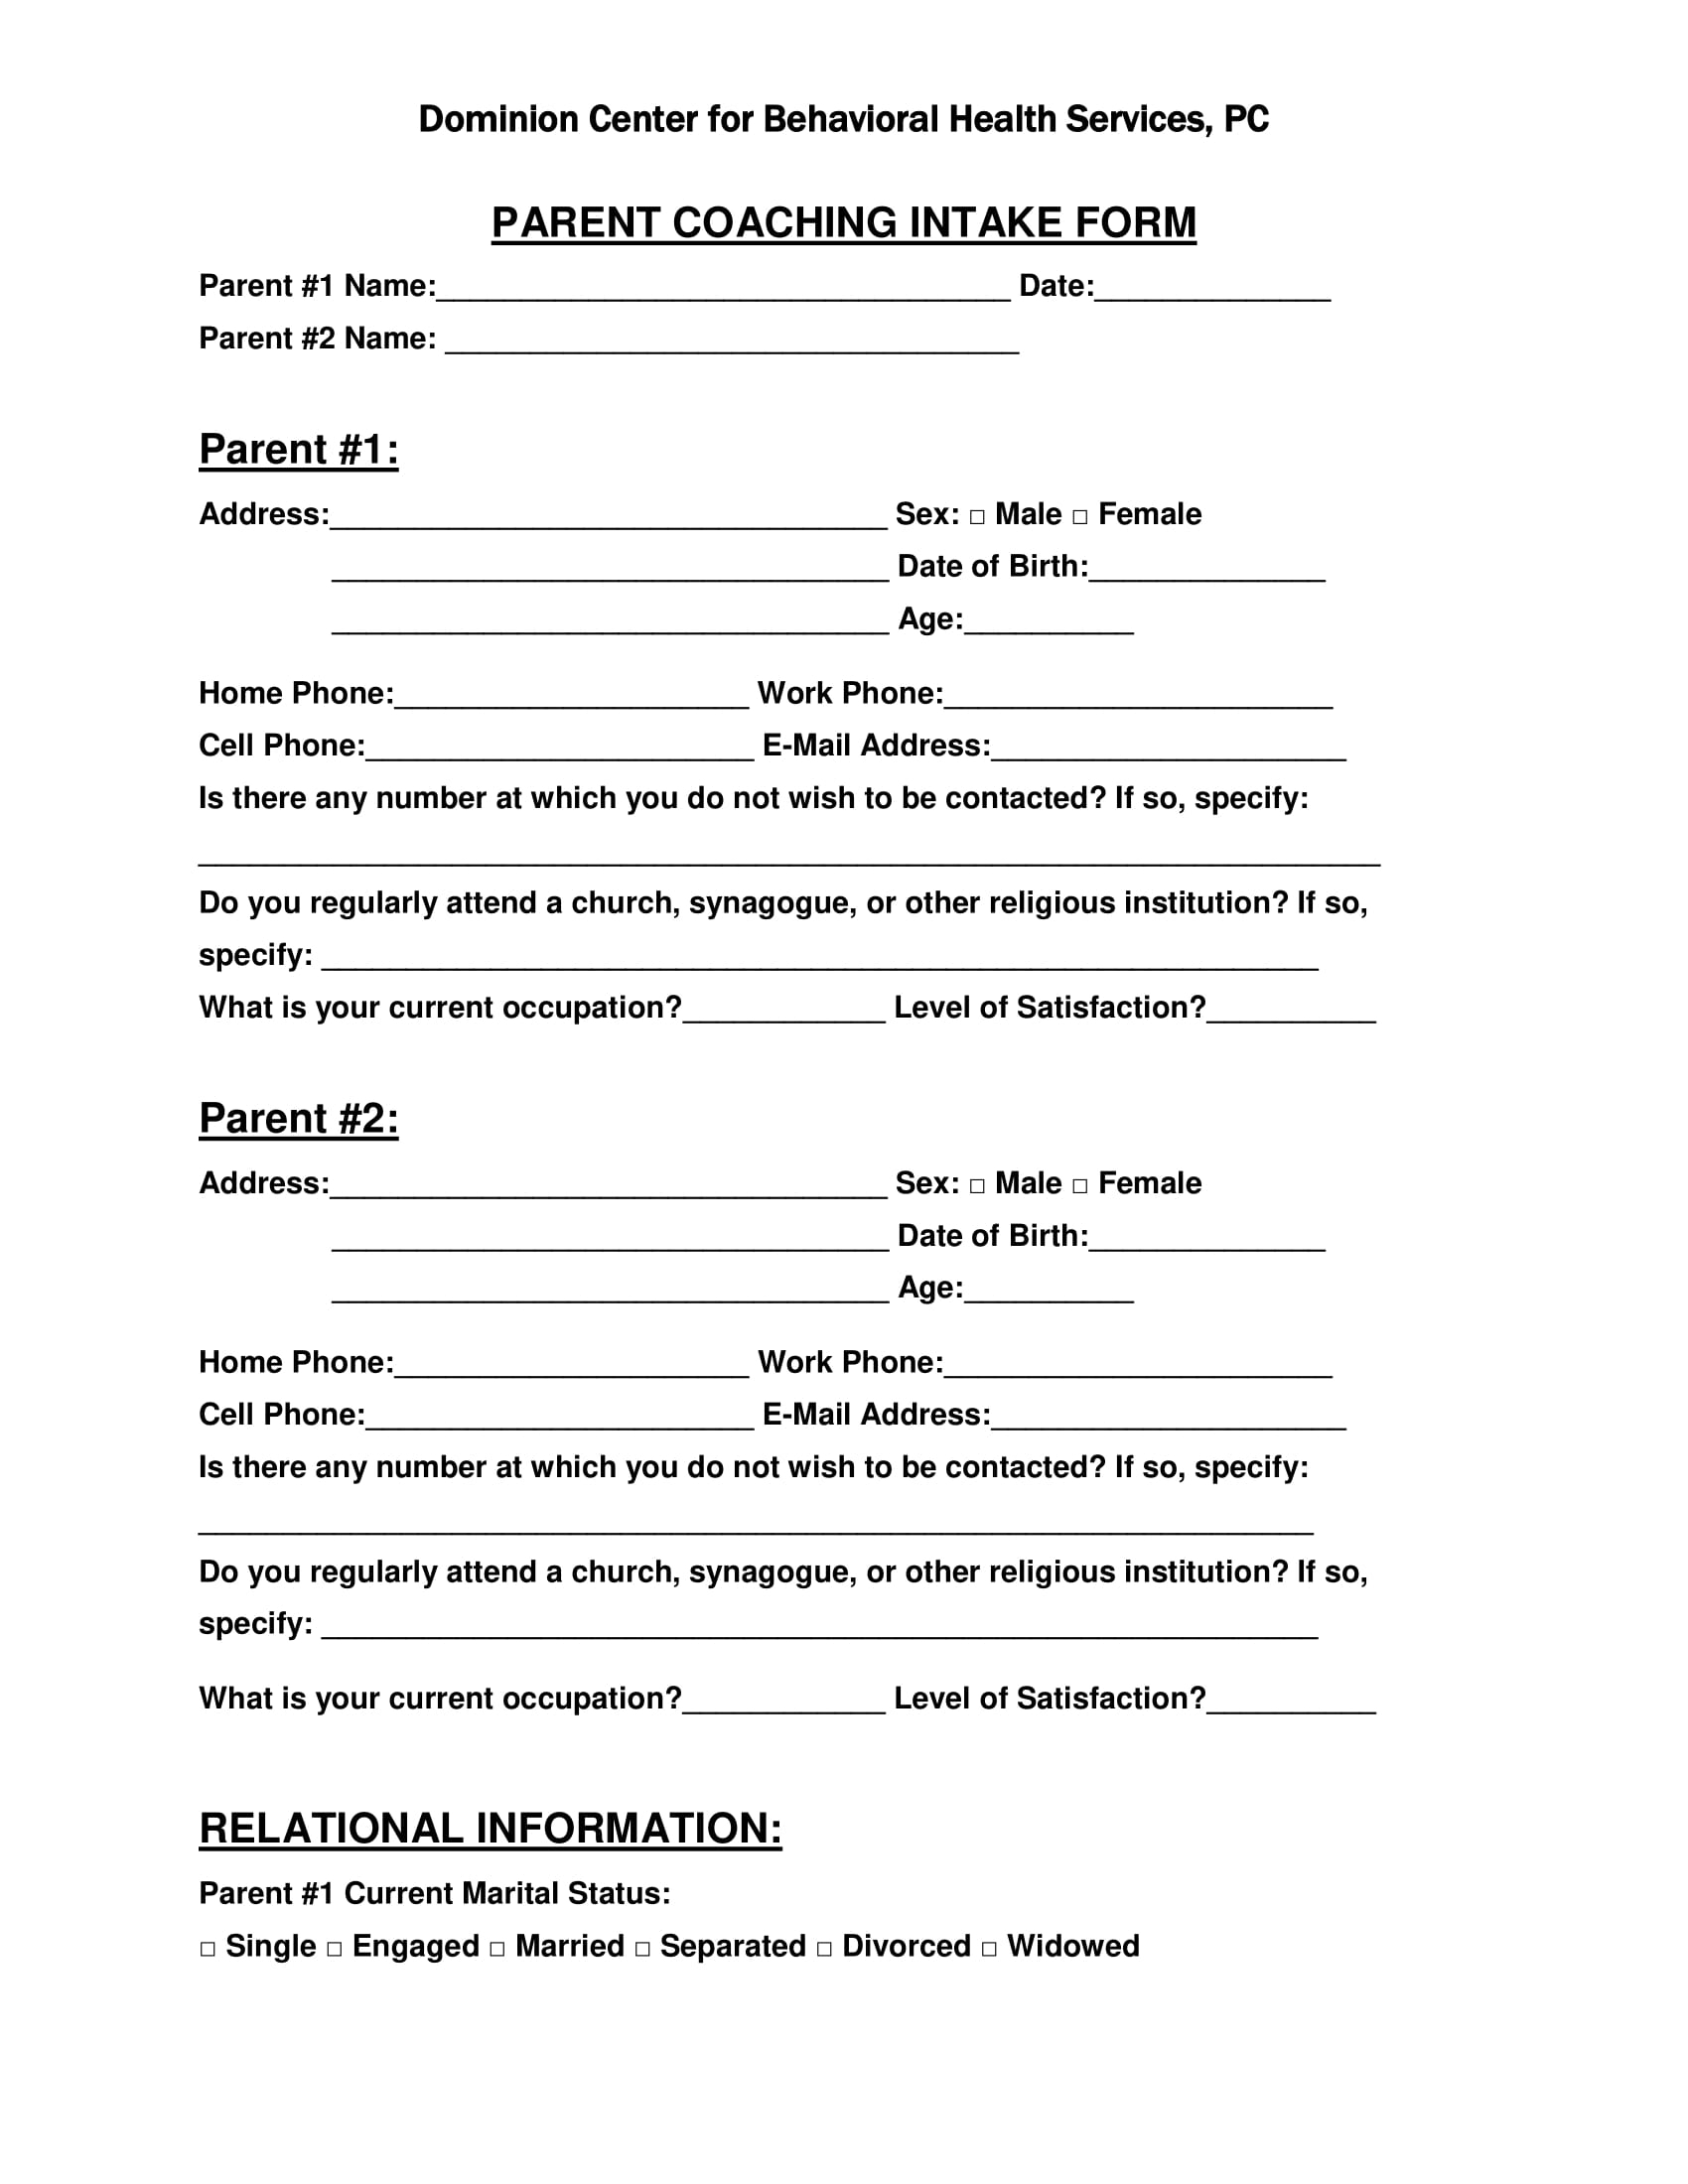 parent coaching intake form 1